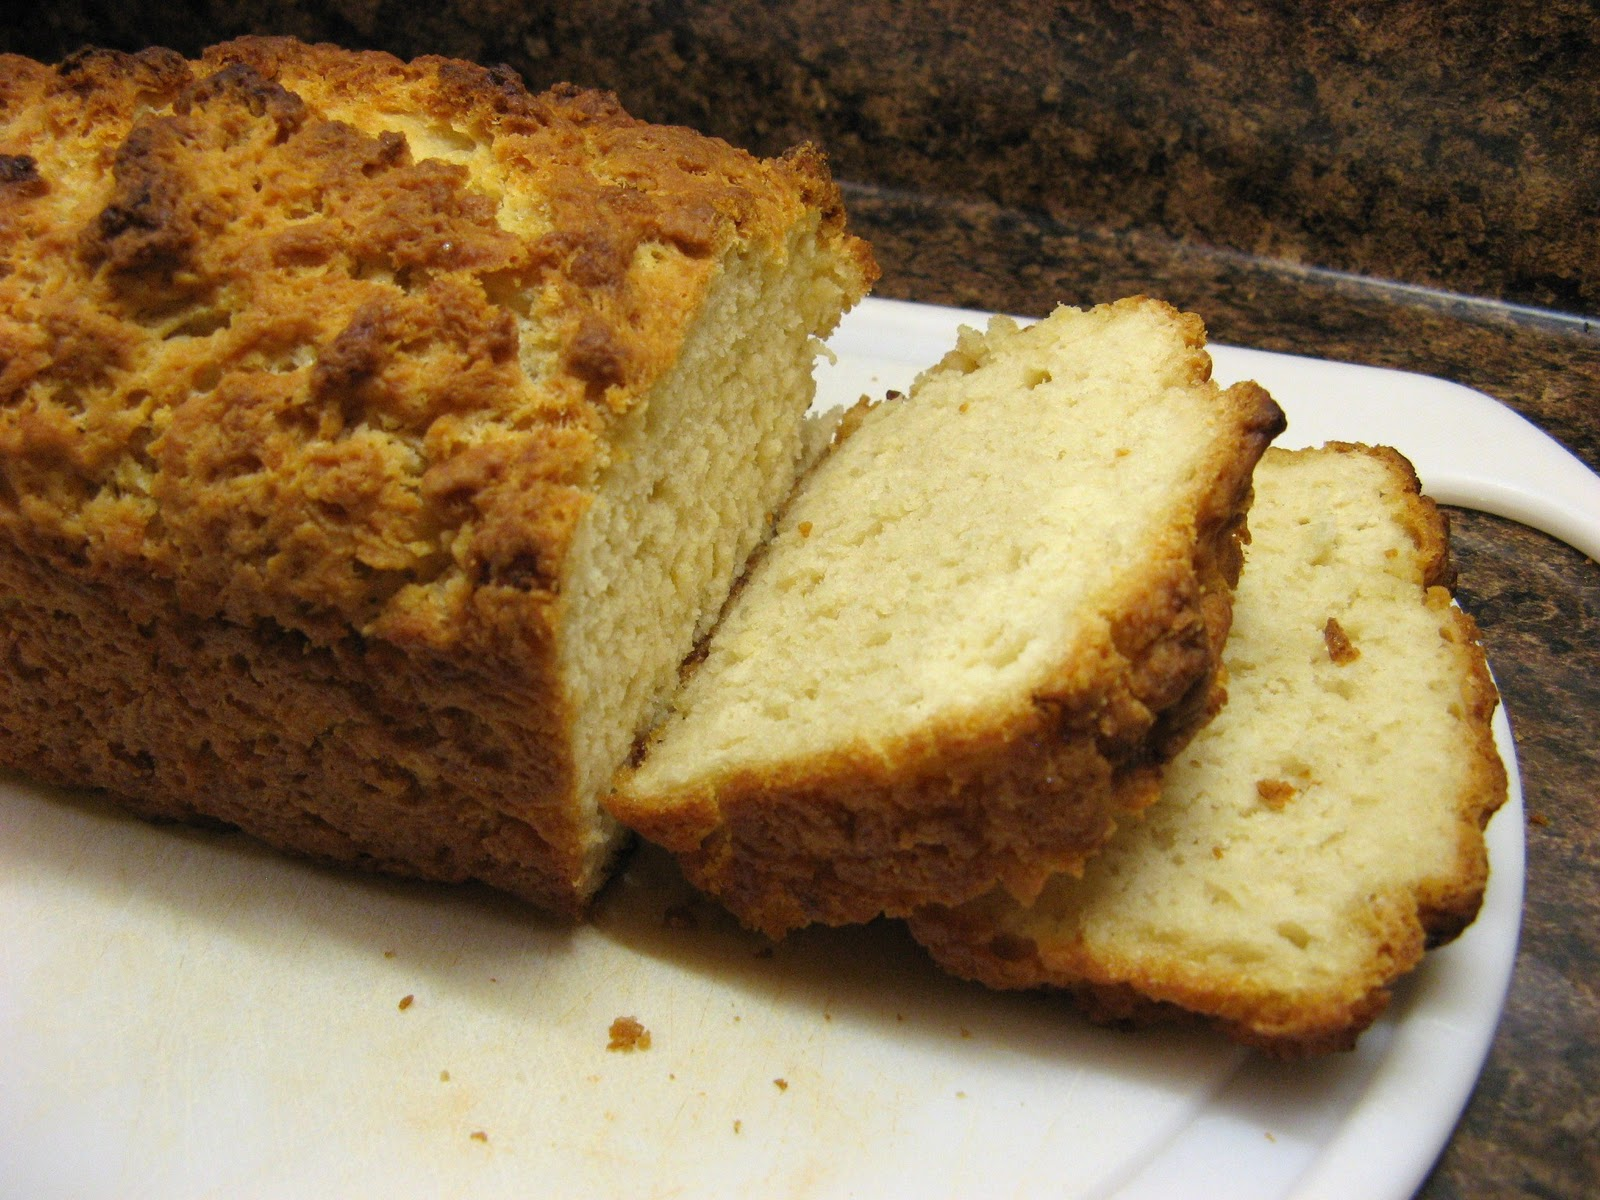 3 Cups flour – sifted!  3 tsp baking powder (omit if using Self-Rising flour)  1 tsp salt (omit if using Self-Rising flour)  ¼ cup sugar  1(12oz) can of beer  ½ cup melted butter  Preheat oven to 375 degrees. Mix dry ingredients and beer. Pour into a greased loaf pan. Bake 1 hour, remove from pan and cool for at least 15 minutes.  Notes: This recipe makes a very hearty bread with crunchy, buttery crust. If you prefer softer crust, mix the butter into the batter instead of pouring it over the top.  If using non-alcoholic beer, add a packet of Dry Active Yeast or 2 tsp bread machine yeast for proper rise.